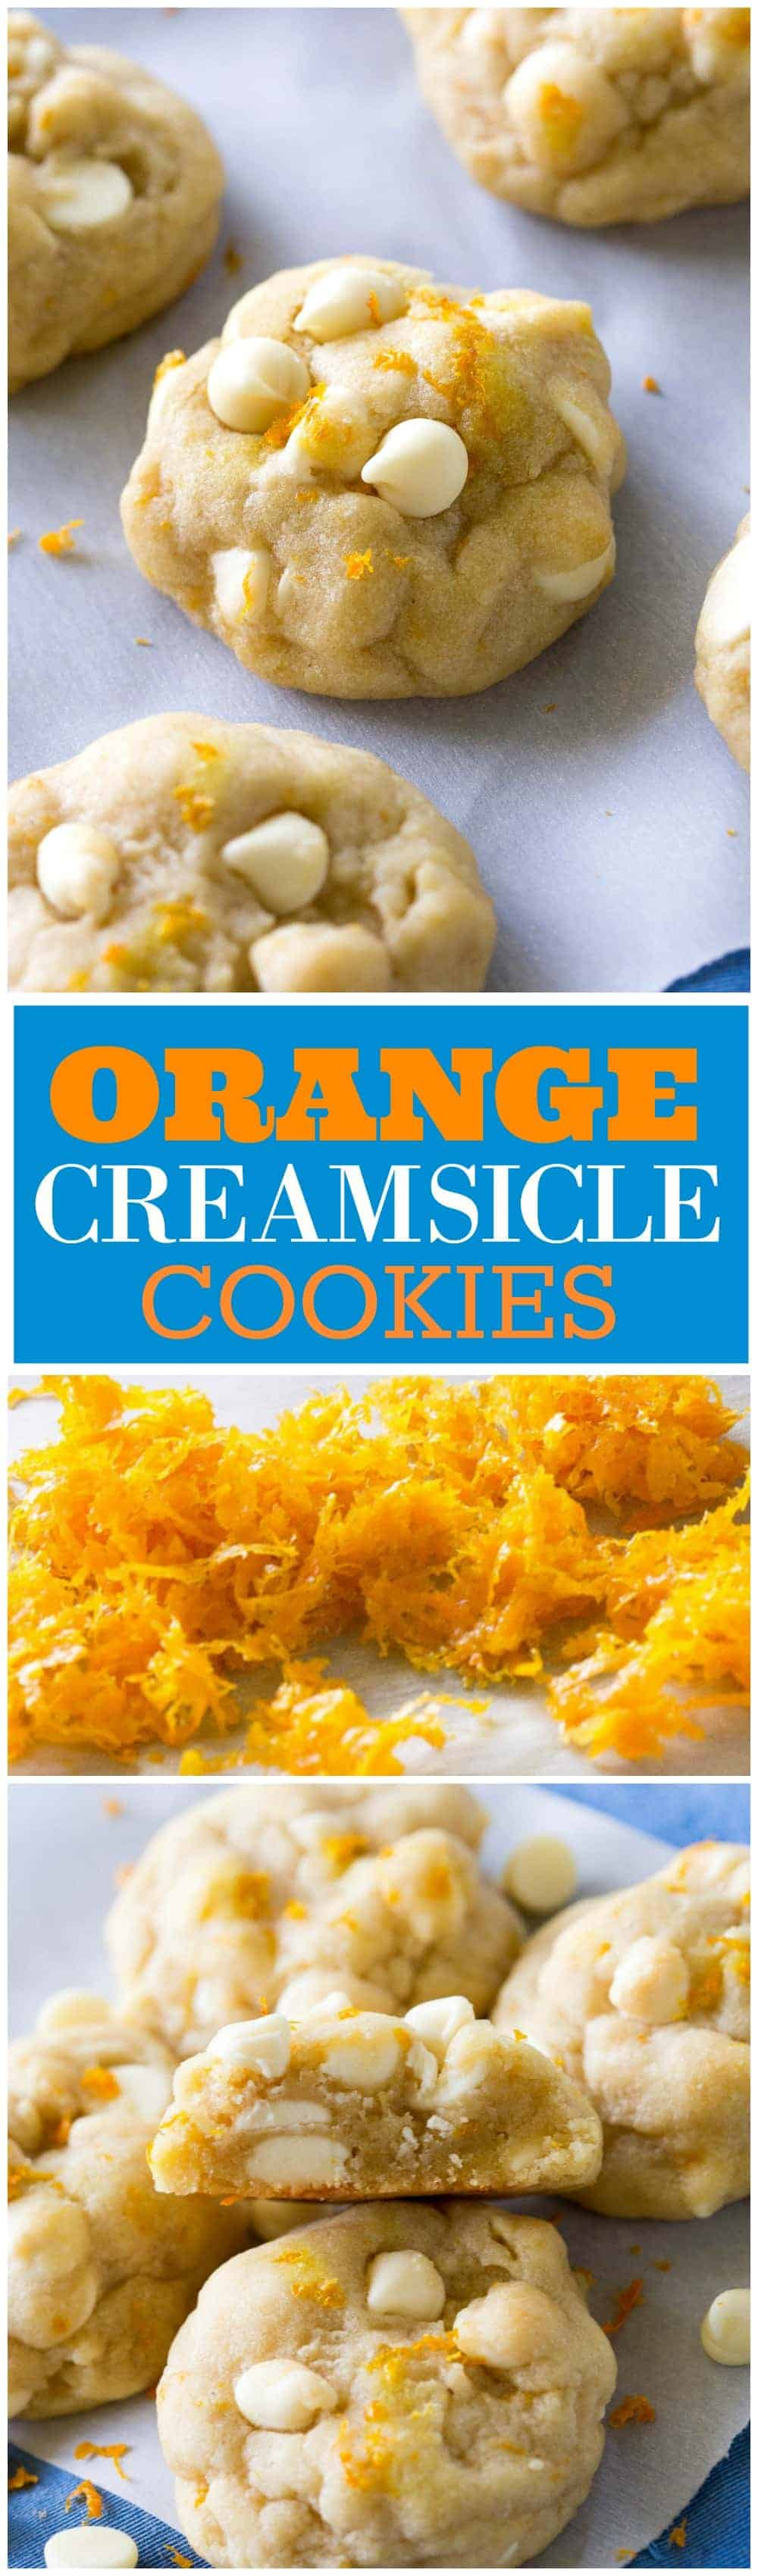 Orange Creamsicle Cookies - soft cookies with white chocolate chips and orange zest. Taste just like the popsicle. #orange #creamsicle #cookies #dessert